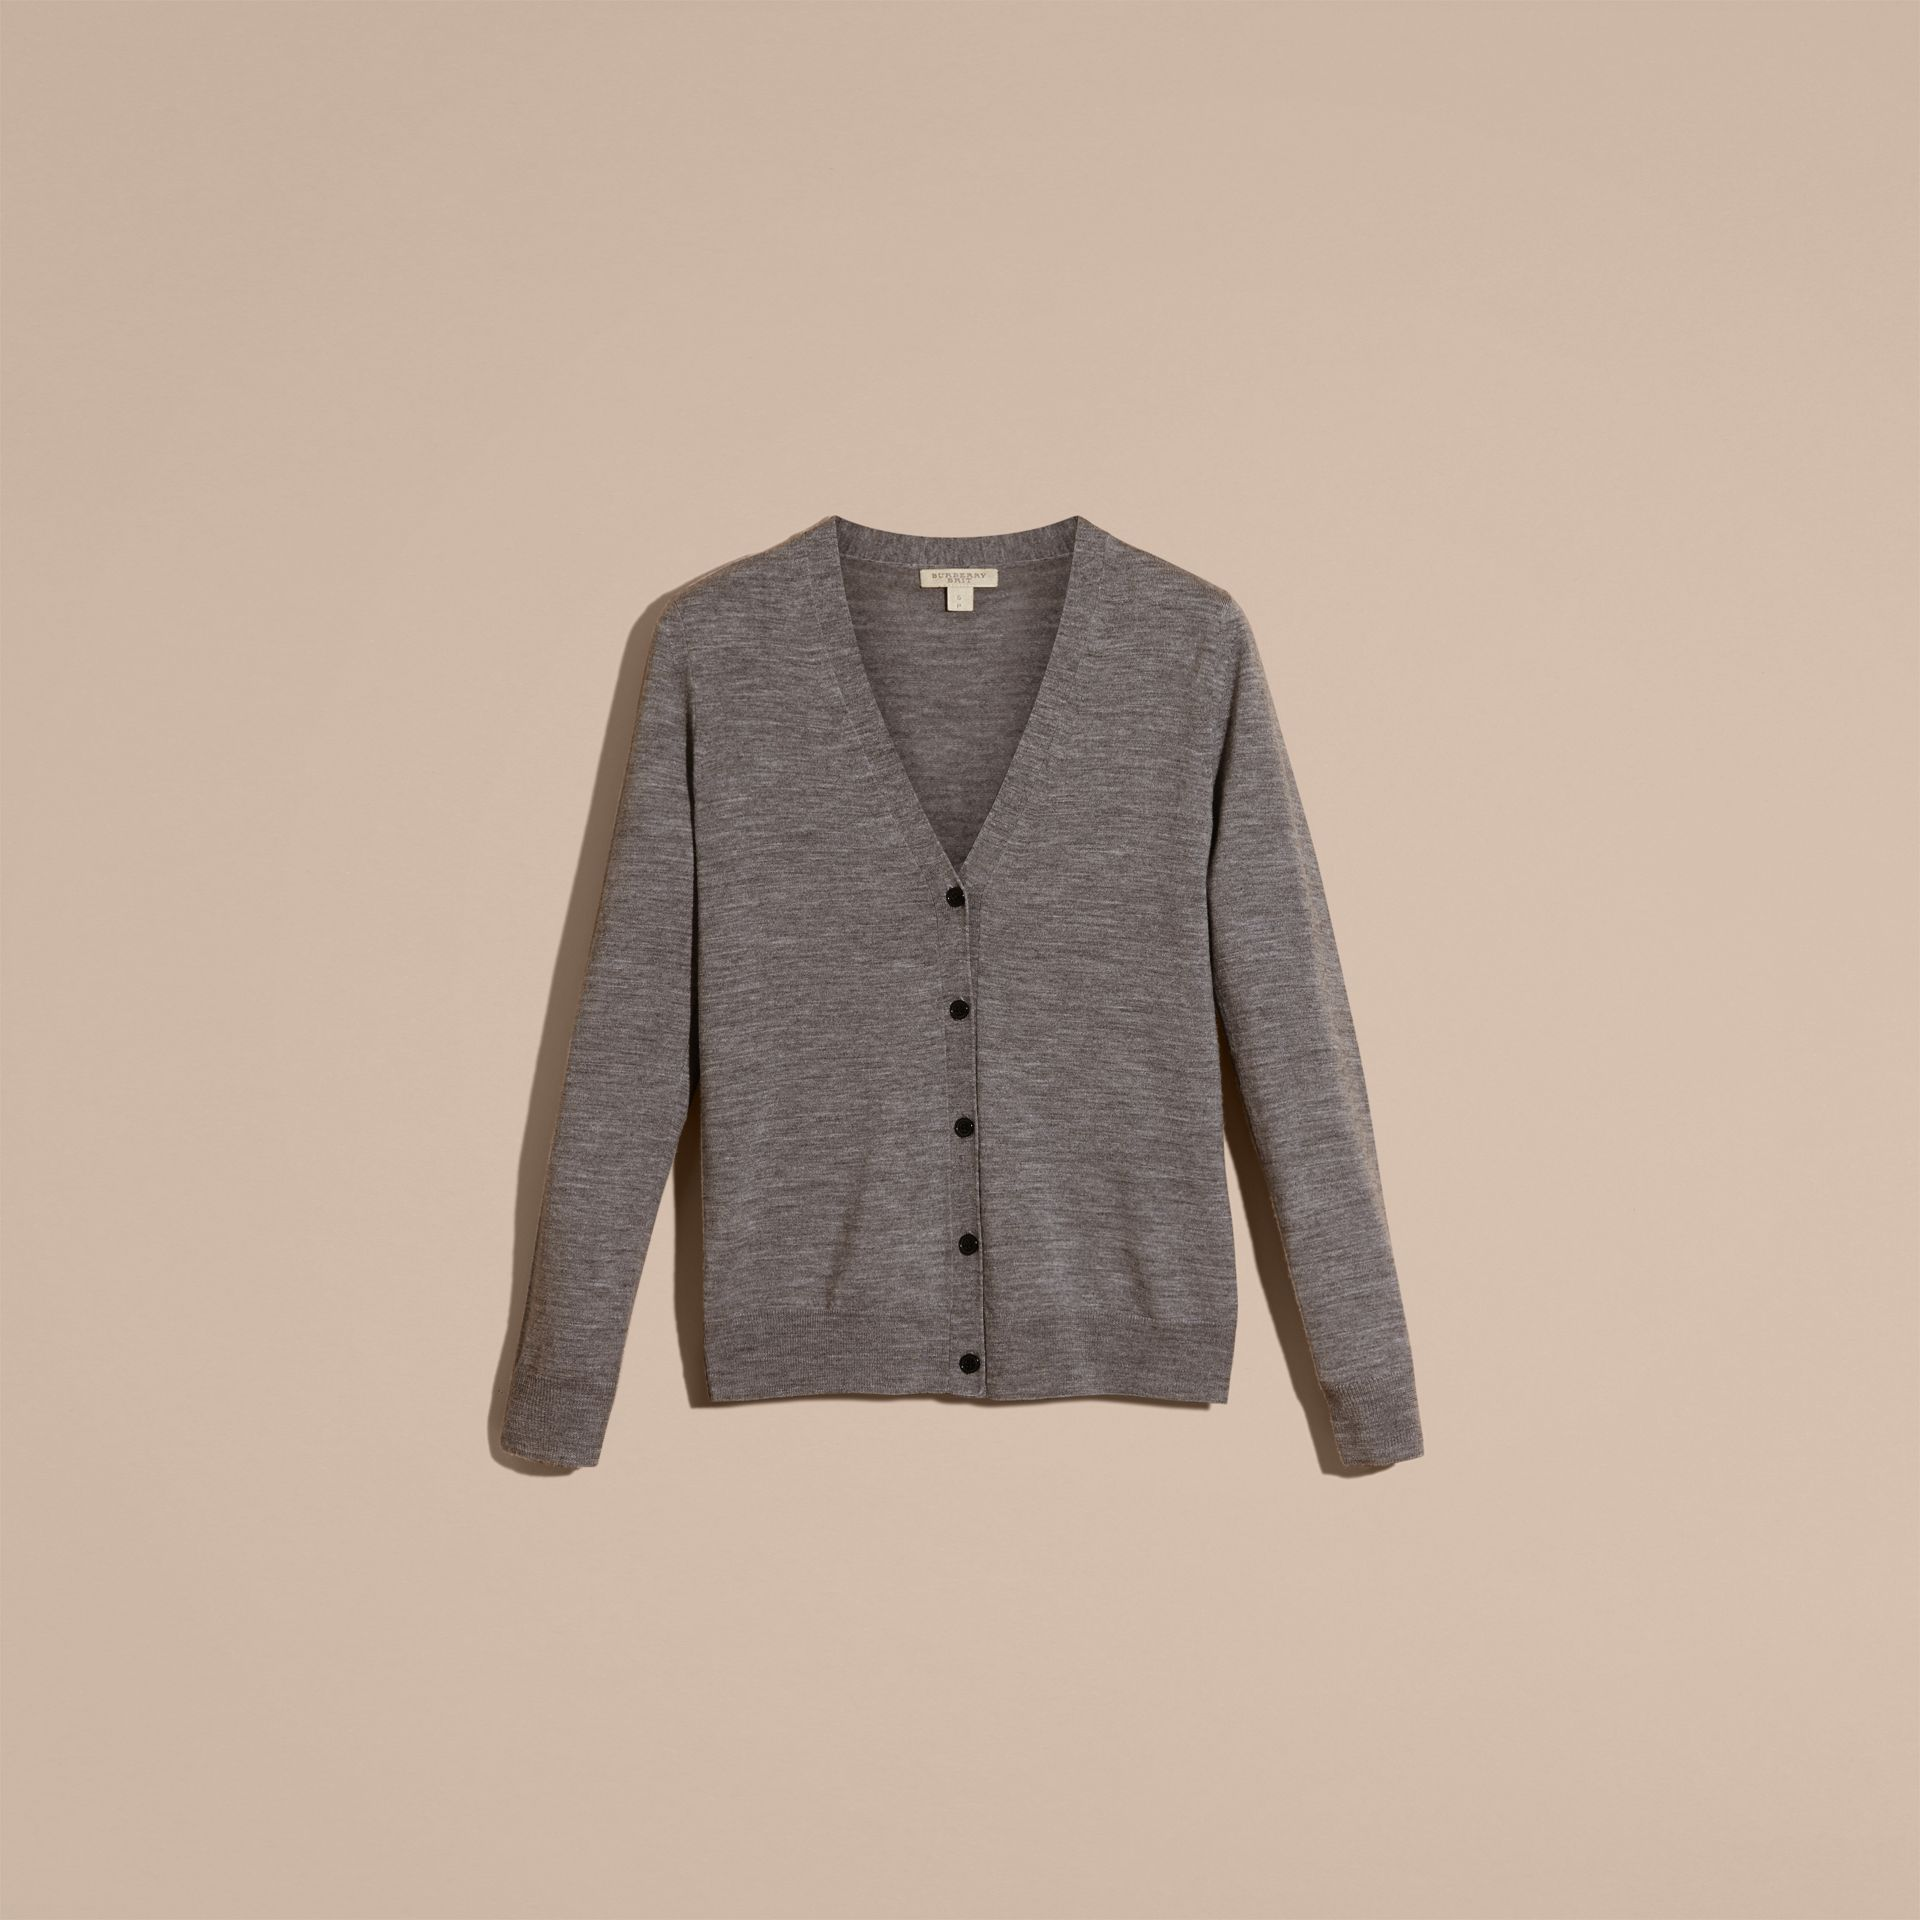 Check Detail Merino Wool Cardigan in Mid Grey Melange - Women | Burberry Canada - gallery image 4